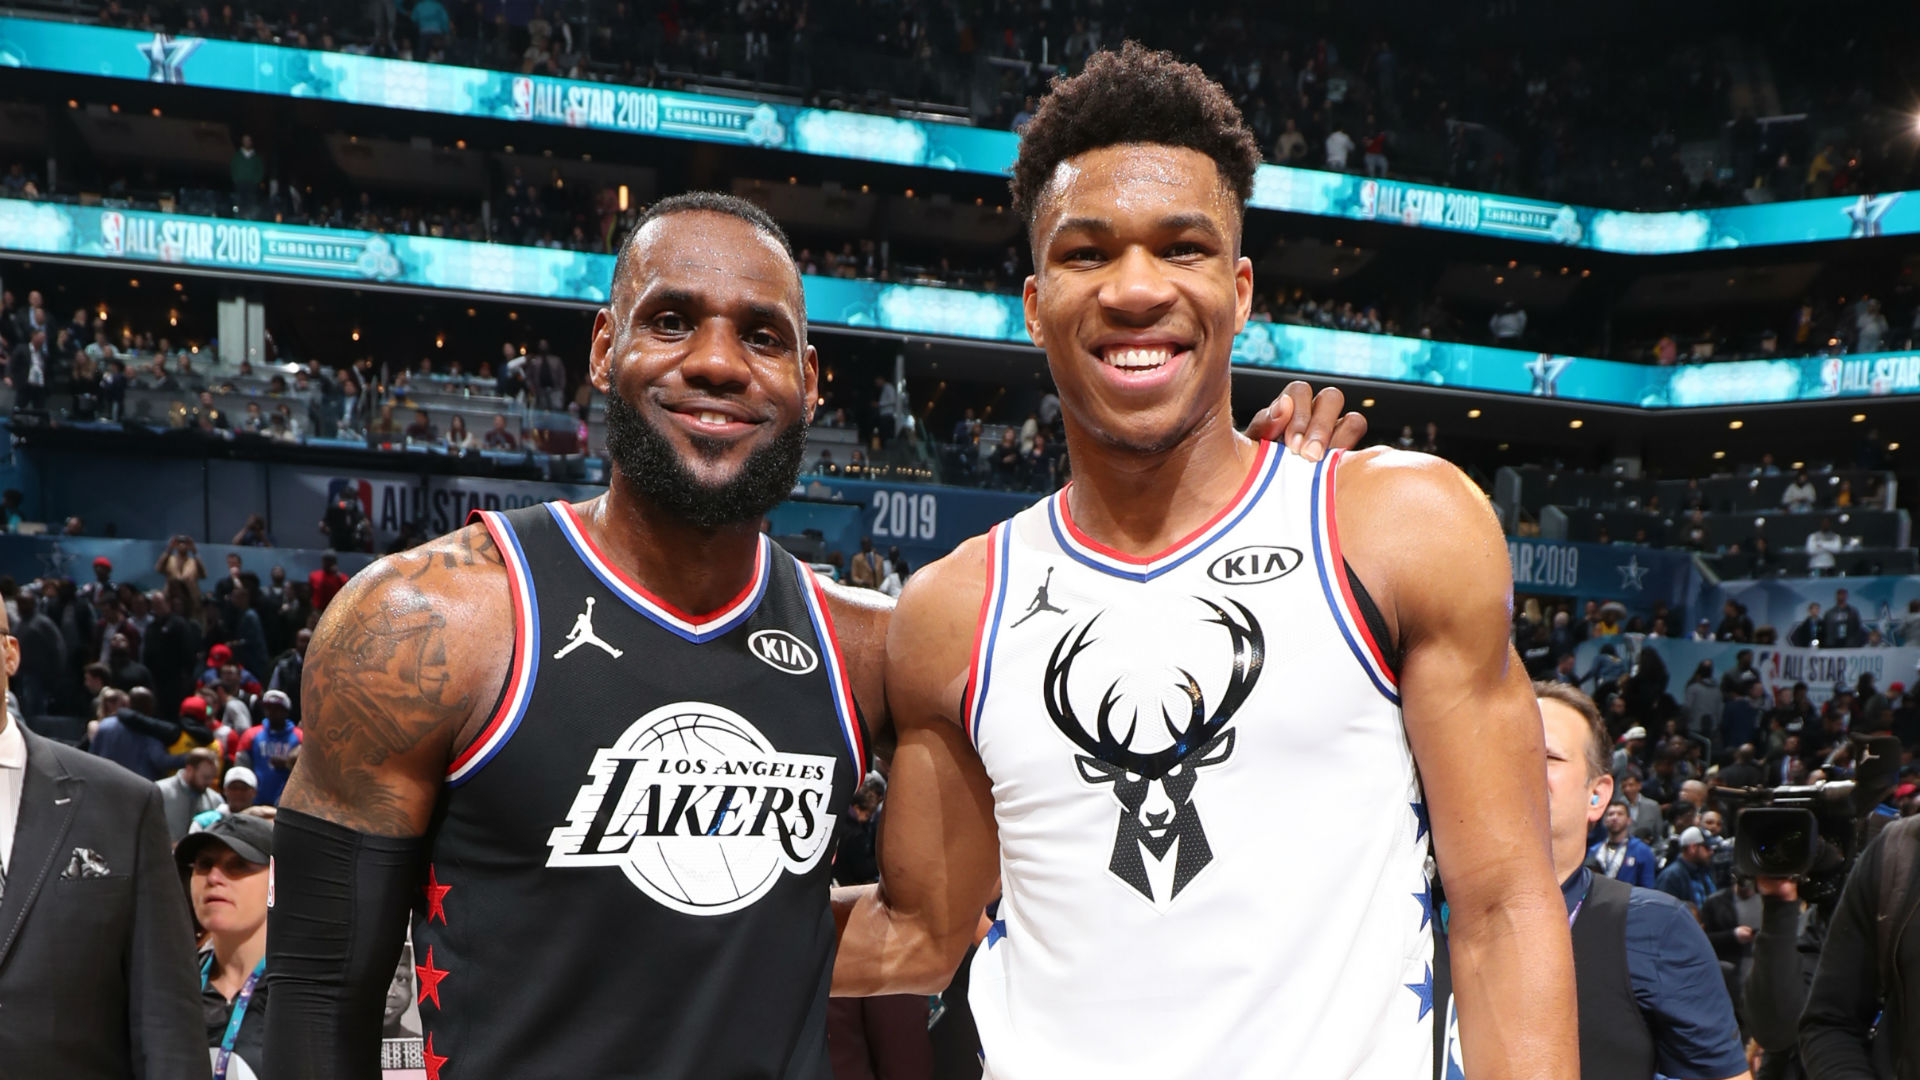 ALL STAR WEEKEND   Domingo: All-Star Game